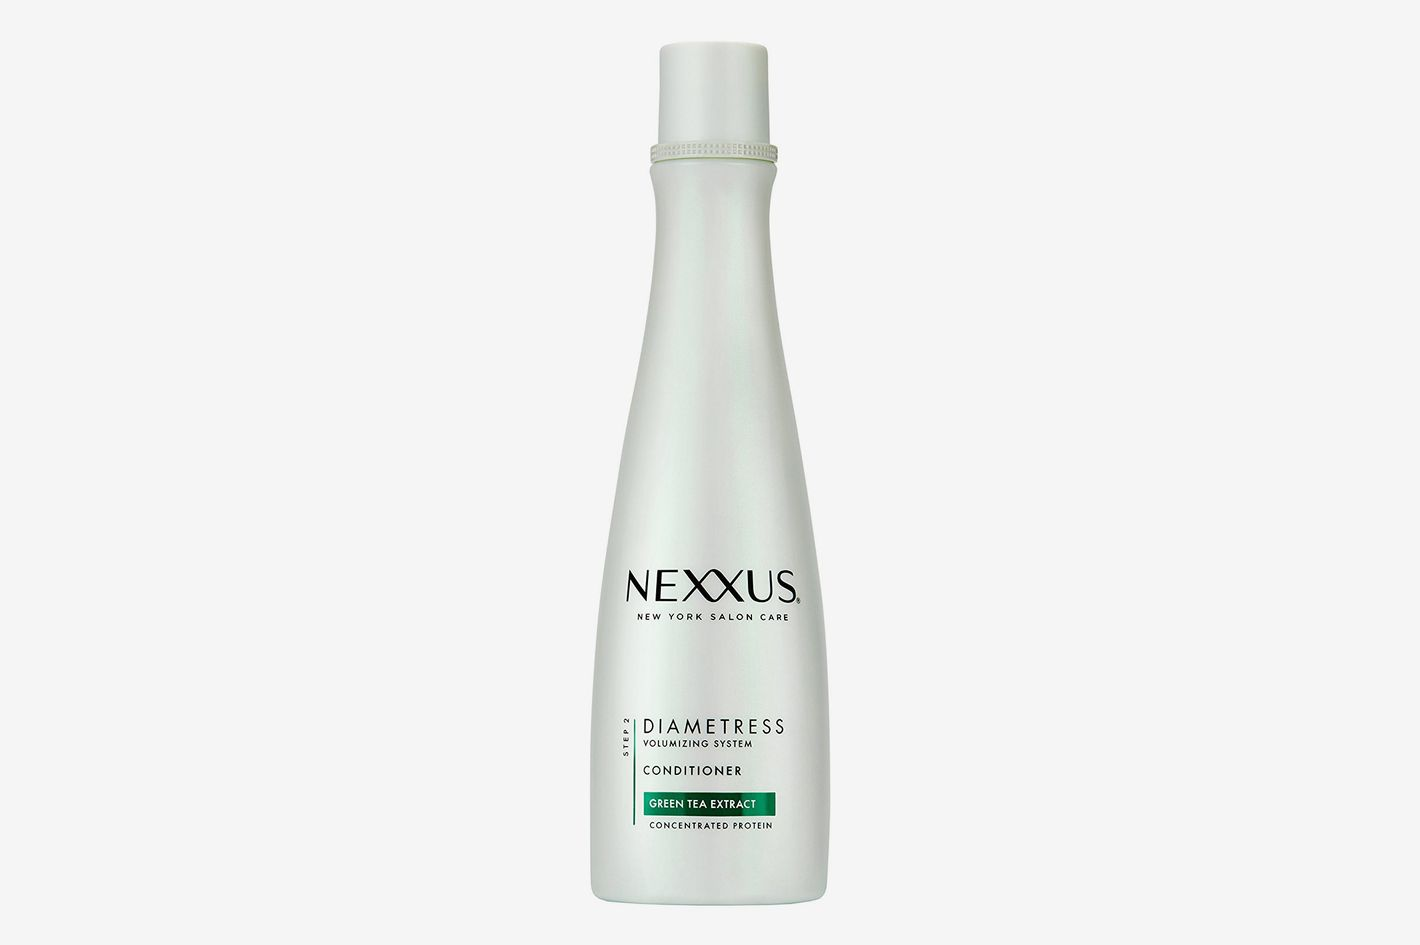 Nexxus Diametress Volume Conditioner